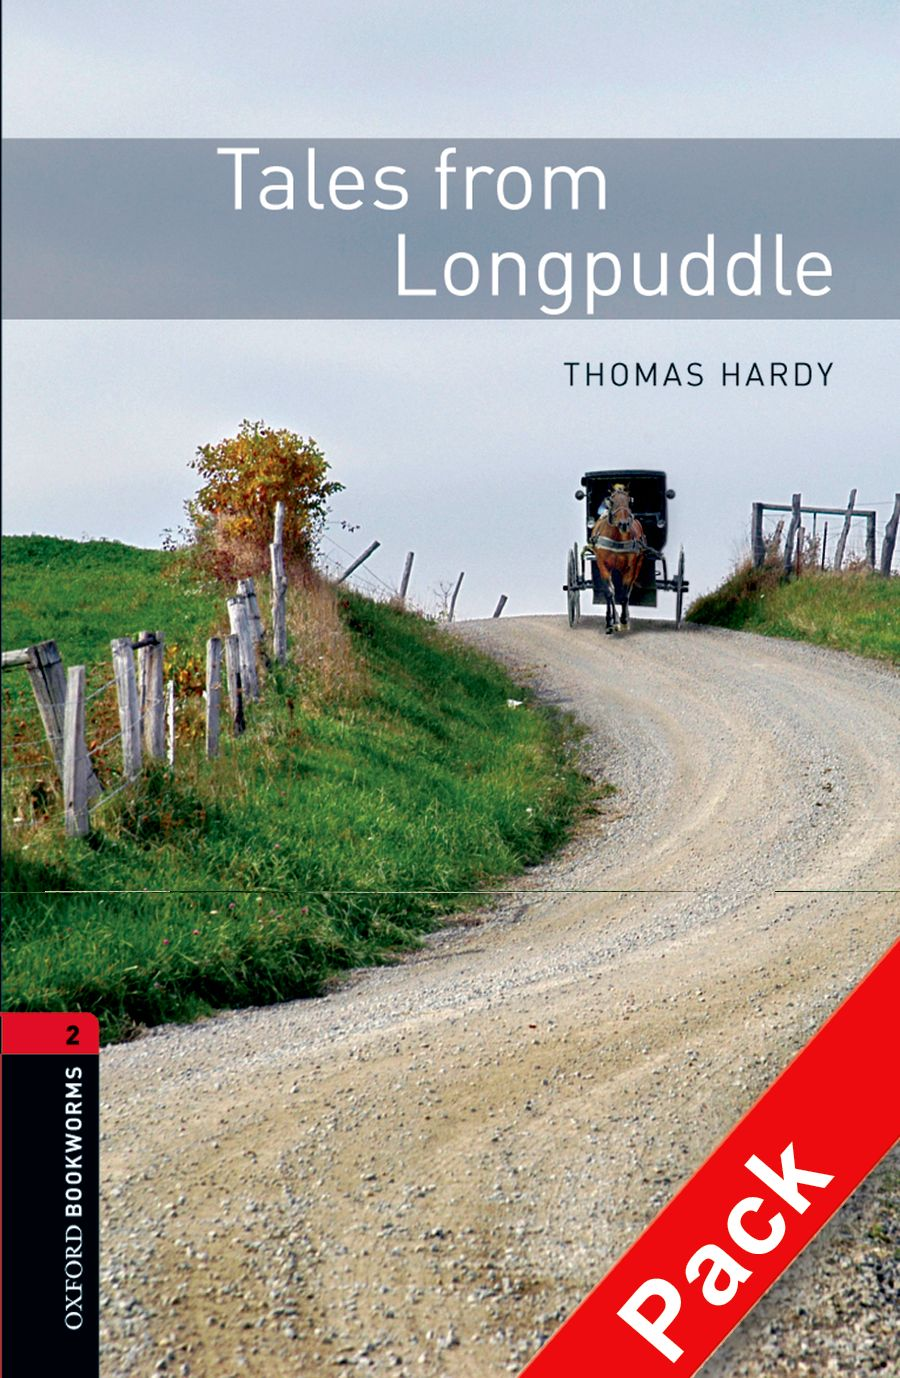 купить OXFORD bookworms library 2: TALES FROM LONGPUDDLE PACK 3E по цене 709 рублей